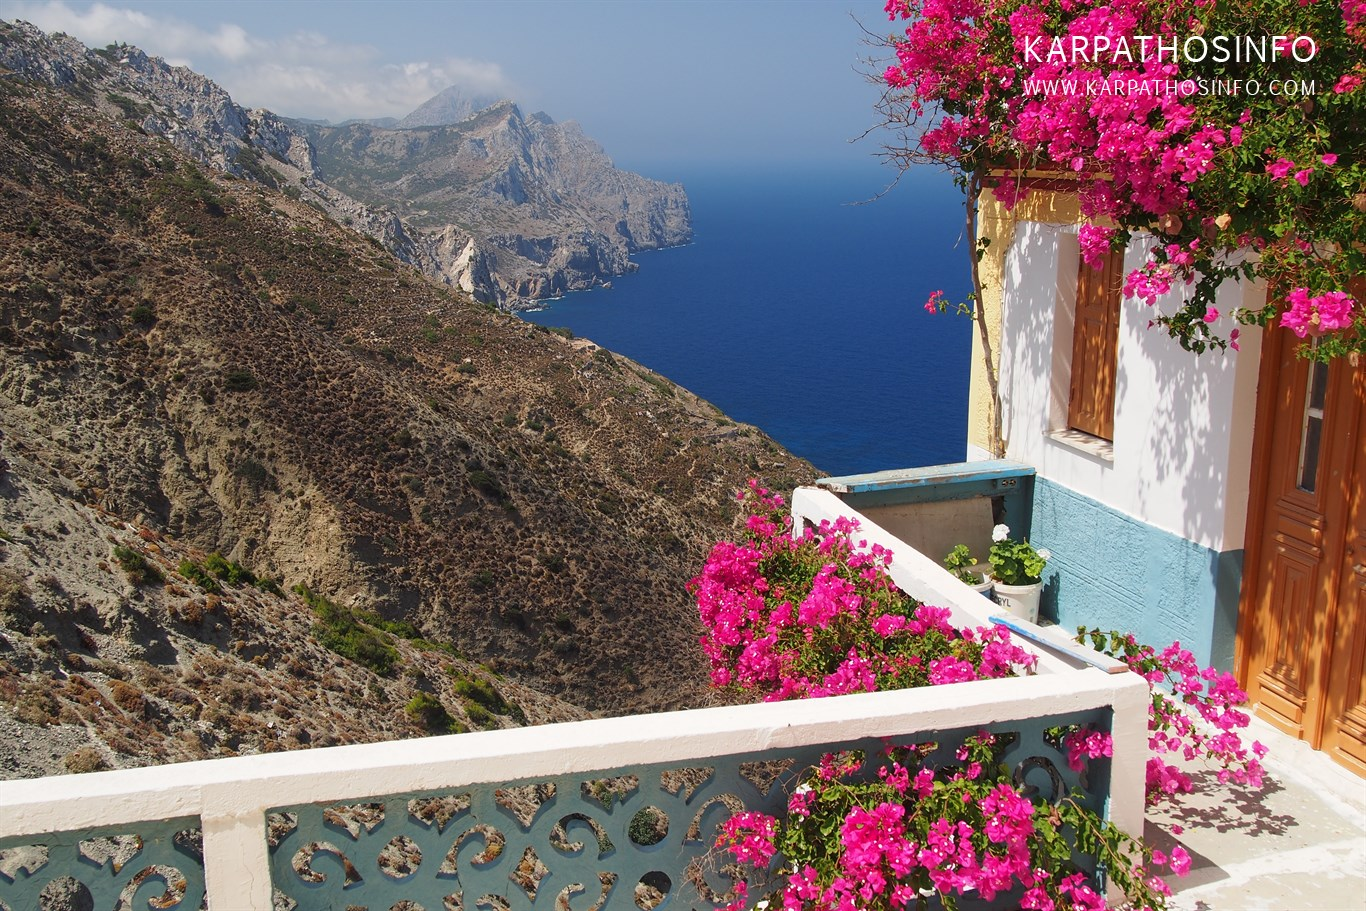 Beautiful views and panoramas in Karpathos island